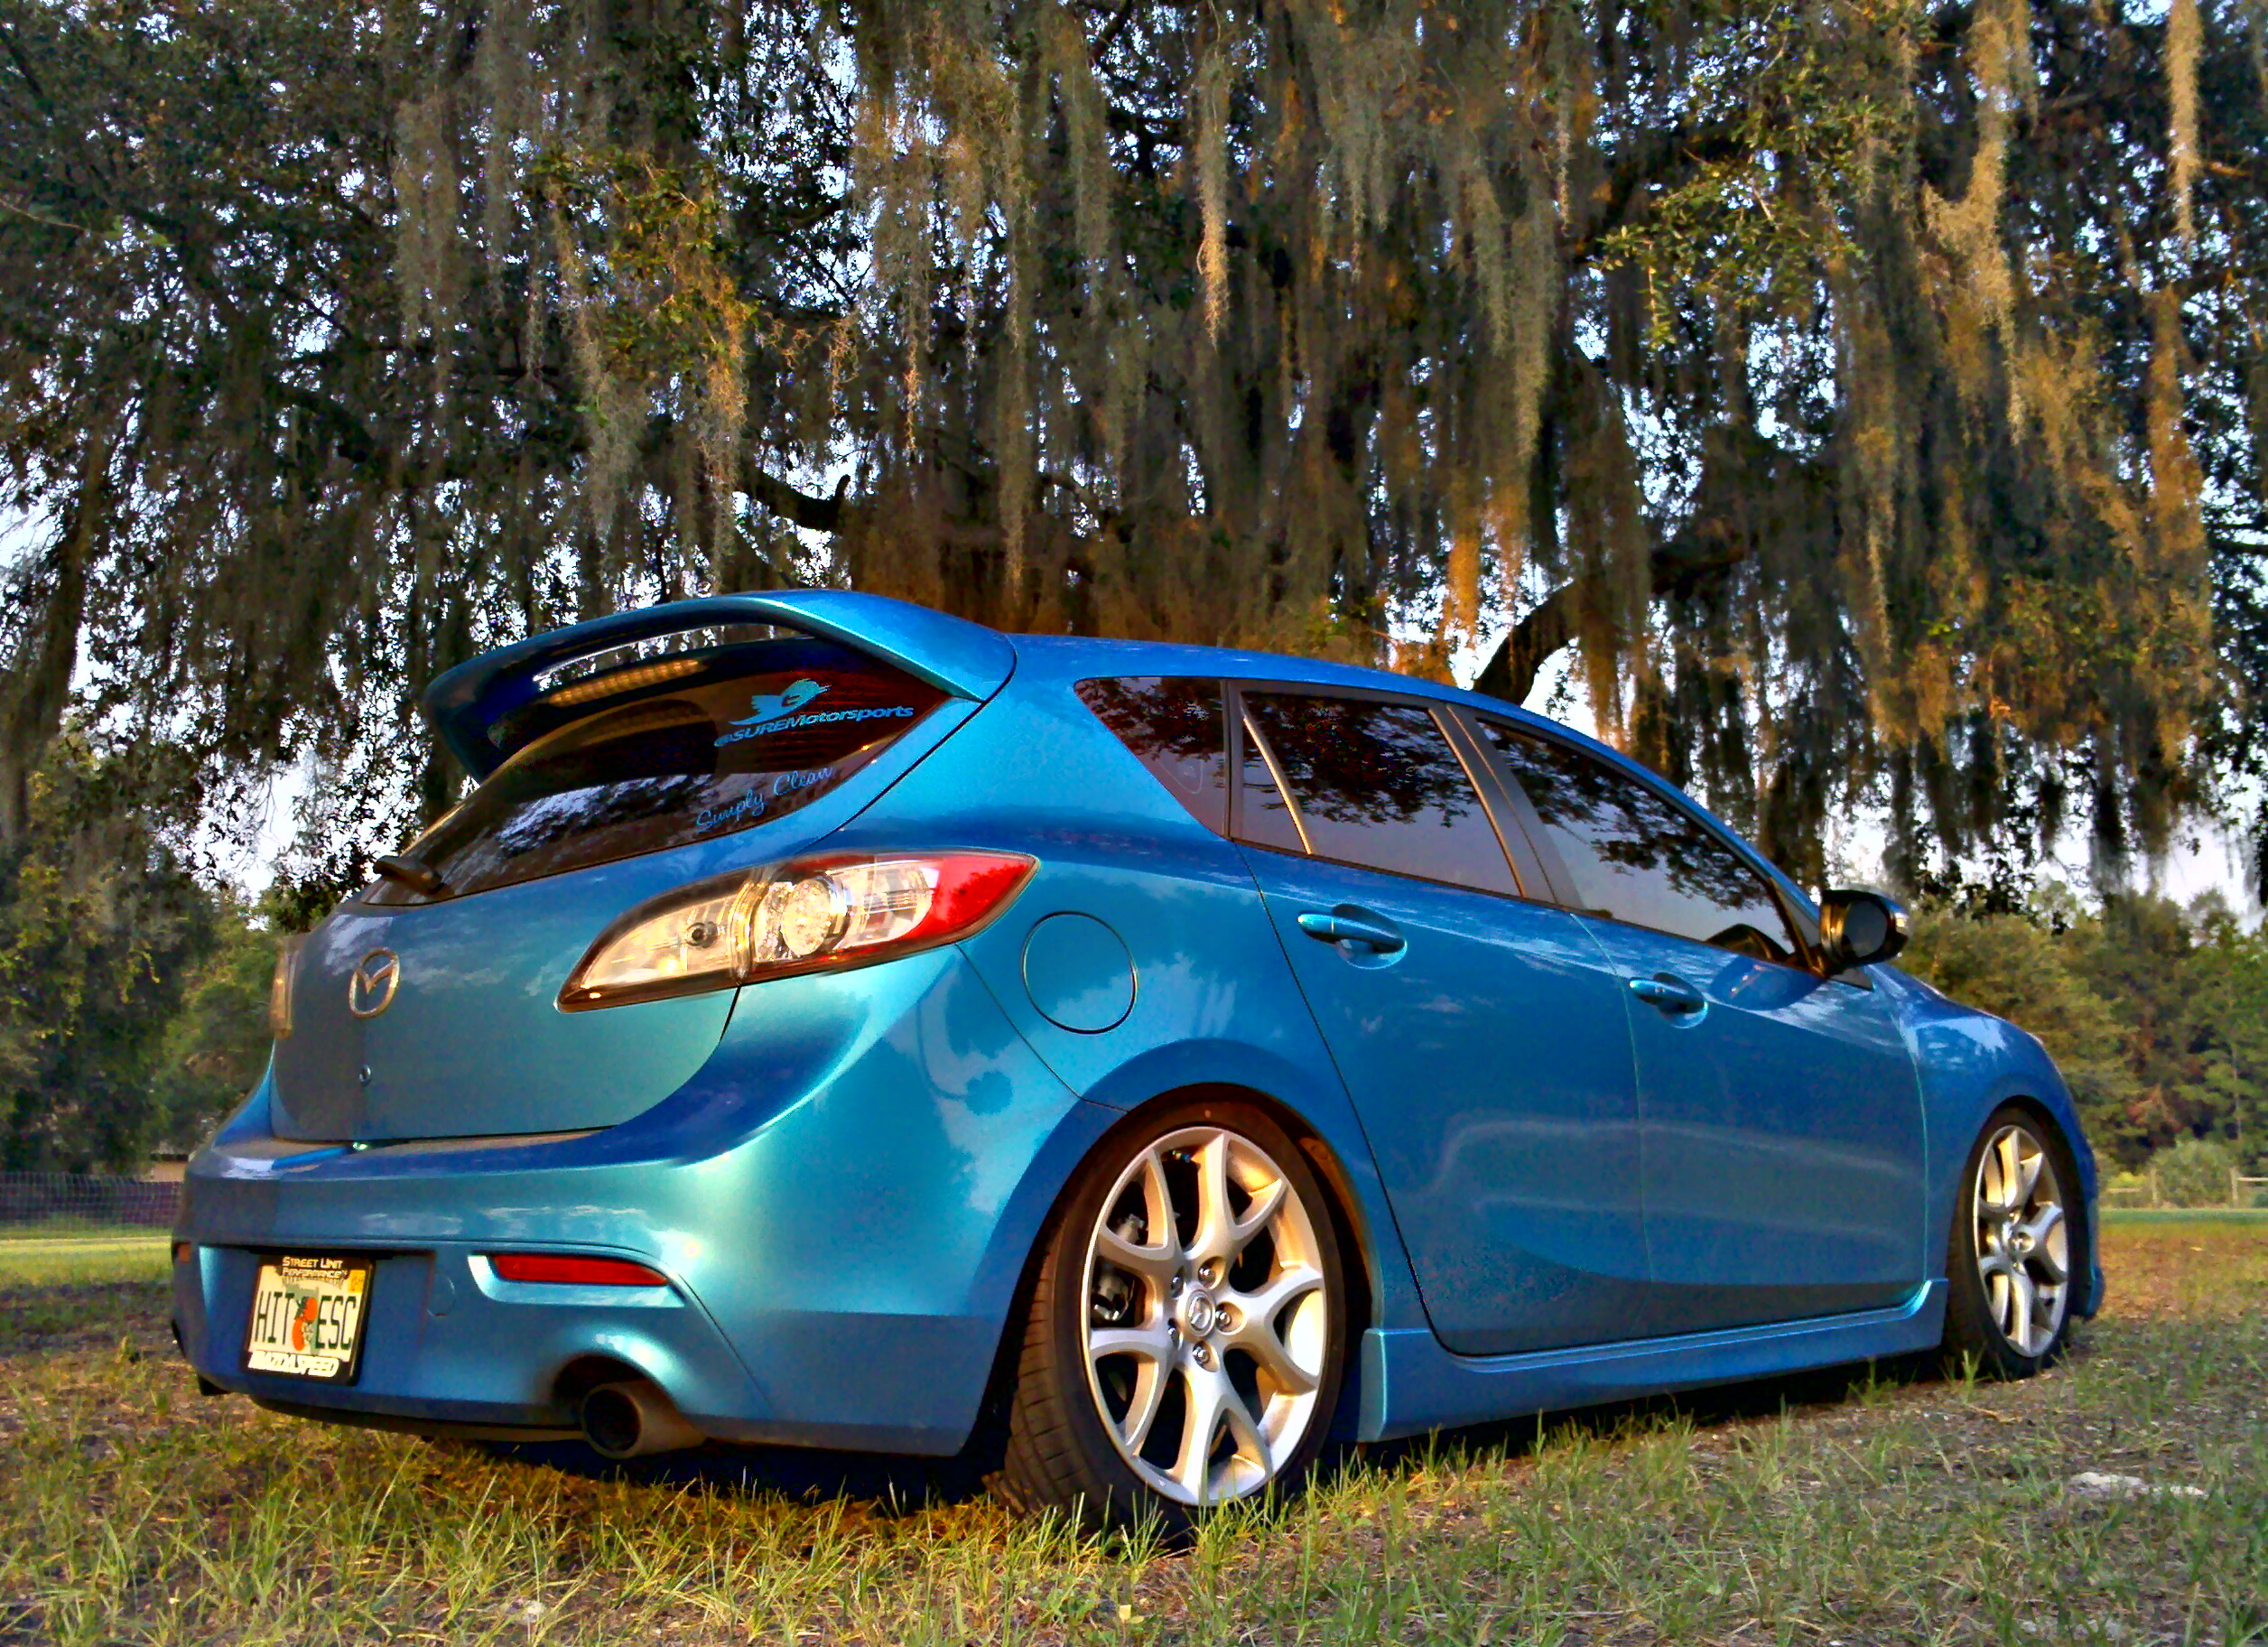 MazdaSpeed3 wallpaper   hdwallpaper20com 2512x1824